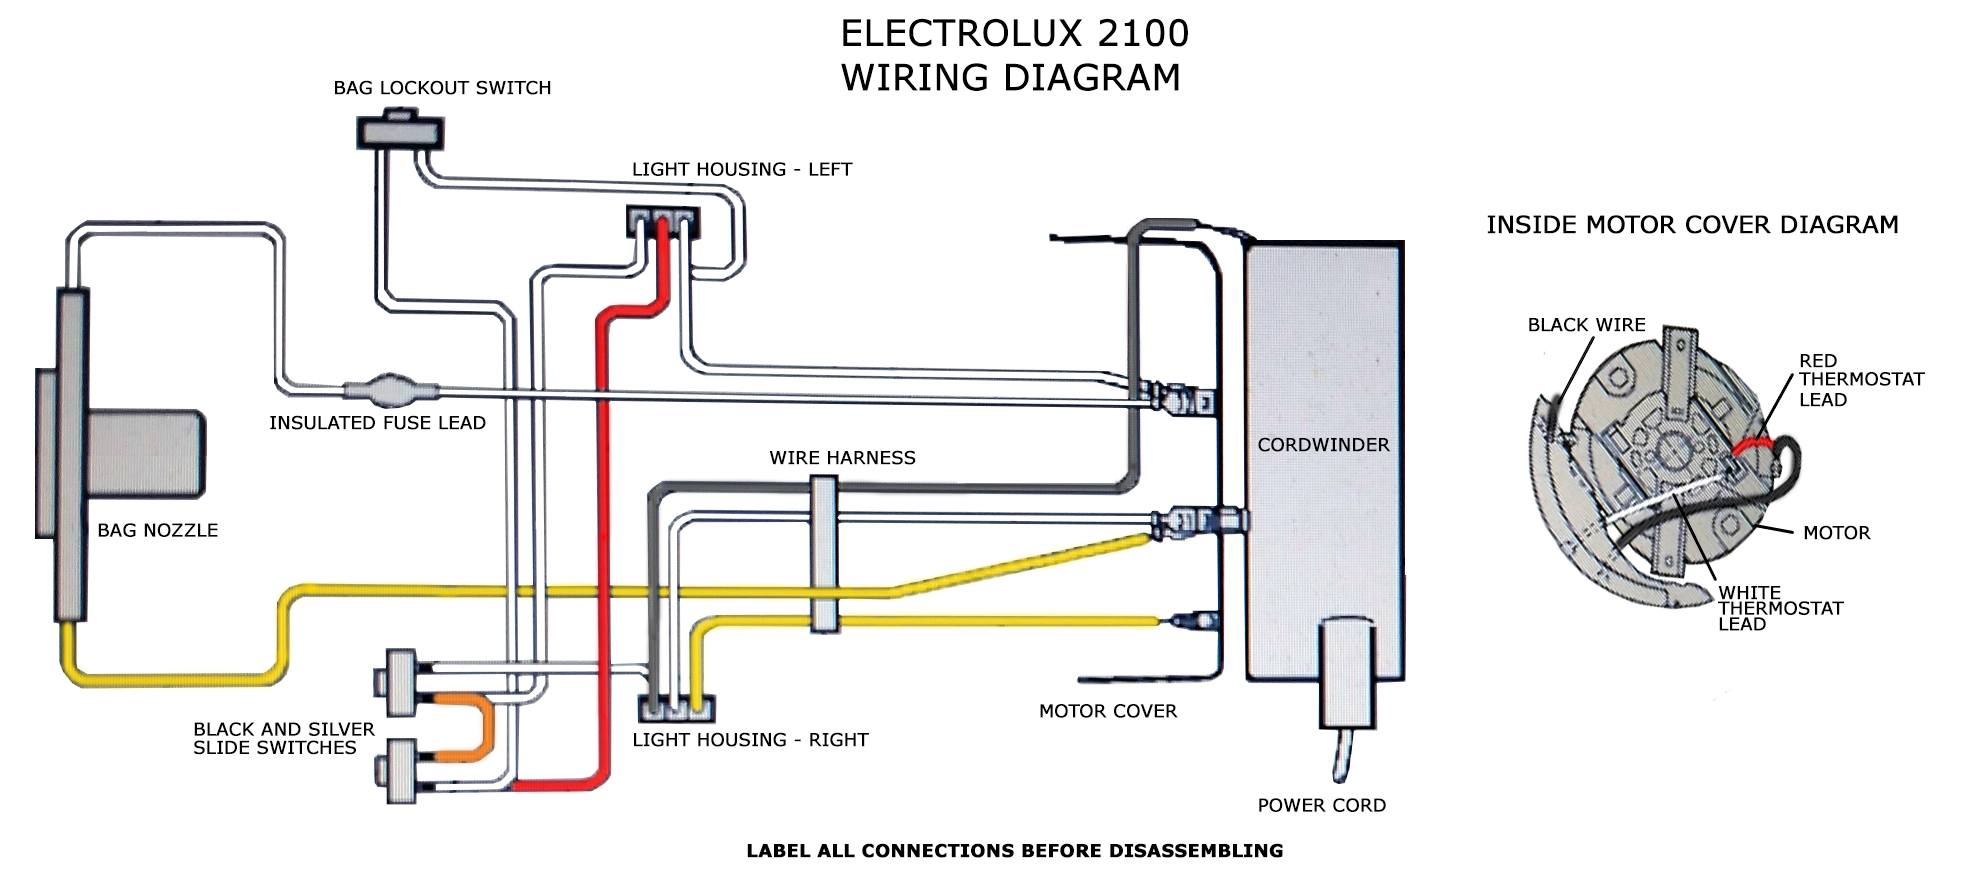 2100 wiring diagram miele vacuum wiring diagram osram wiring diagram \u2022 wiring diagram filter queen wiring diagram at bakdesigns.co